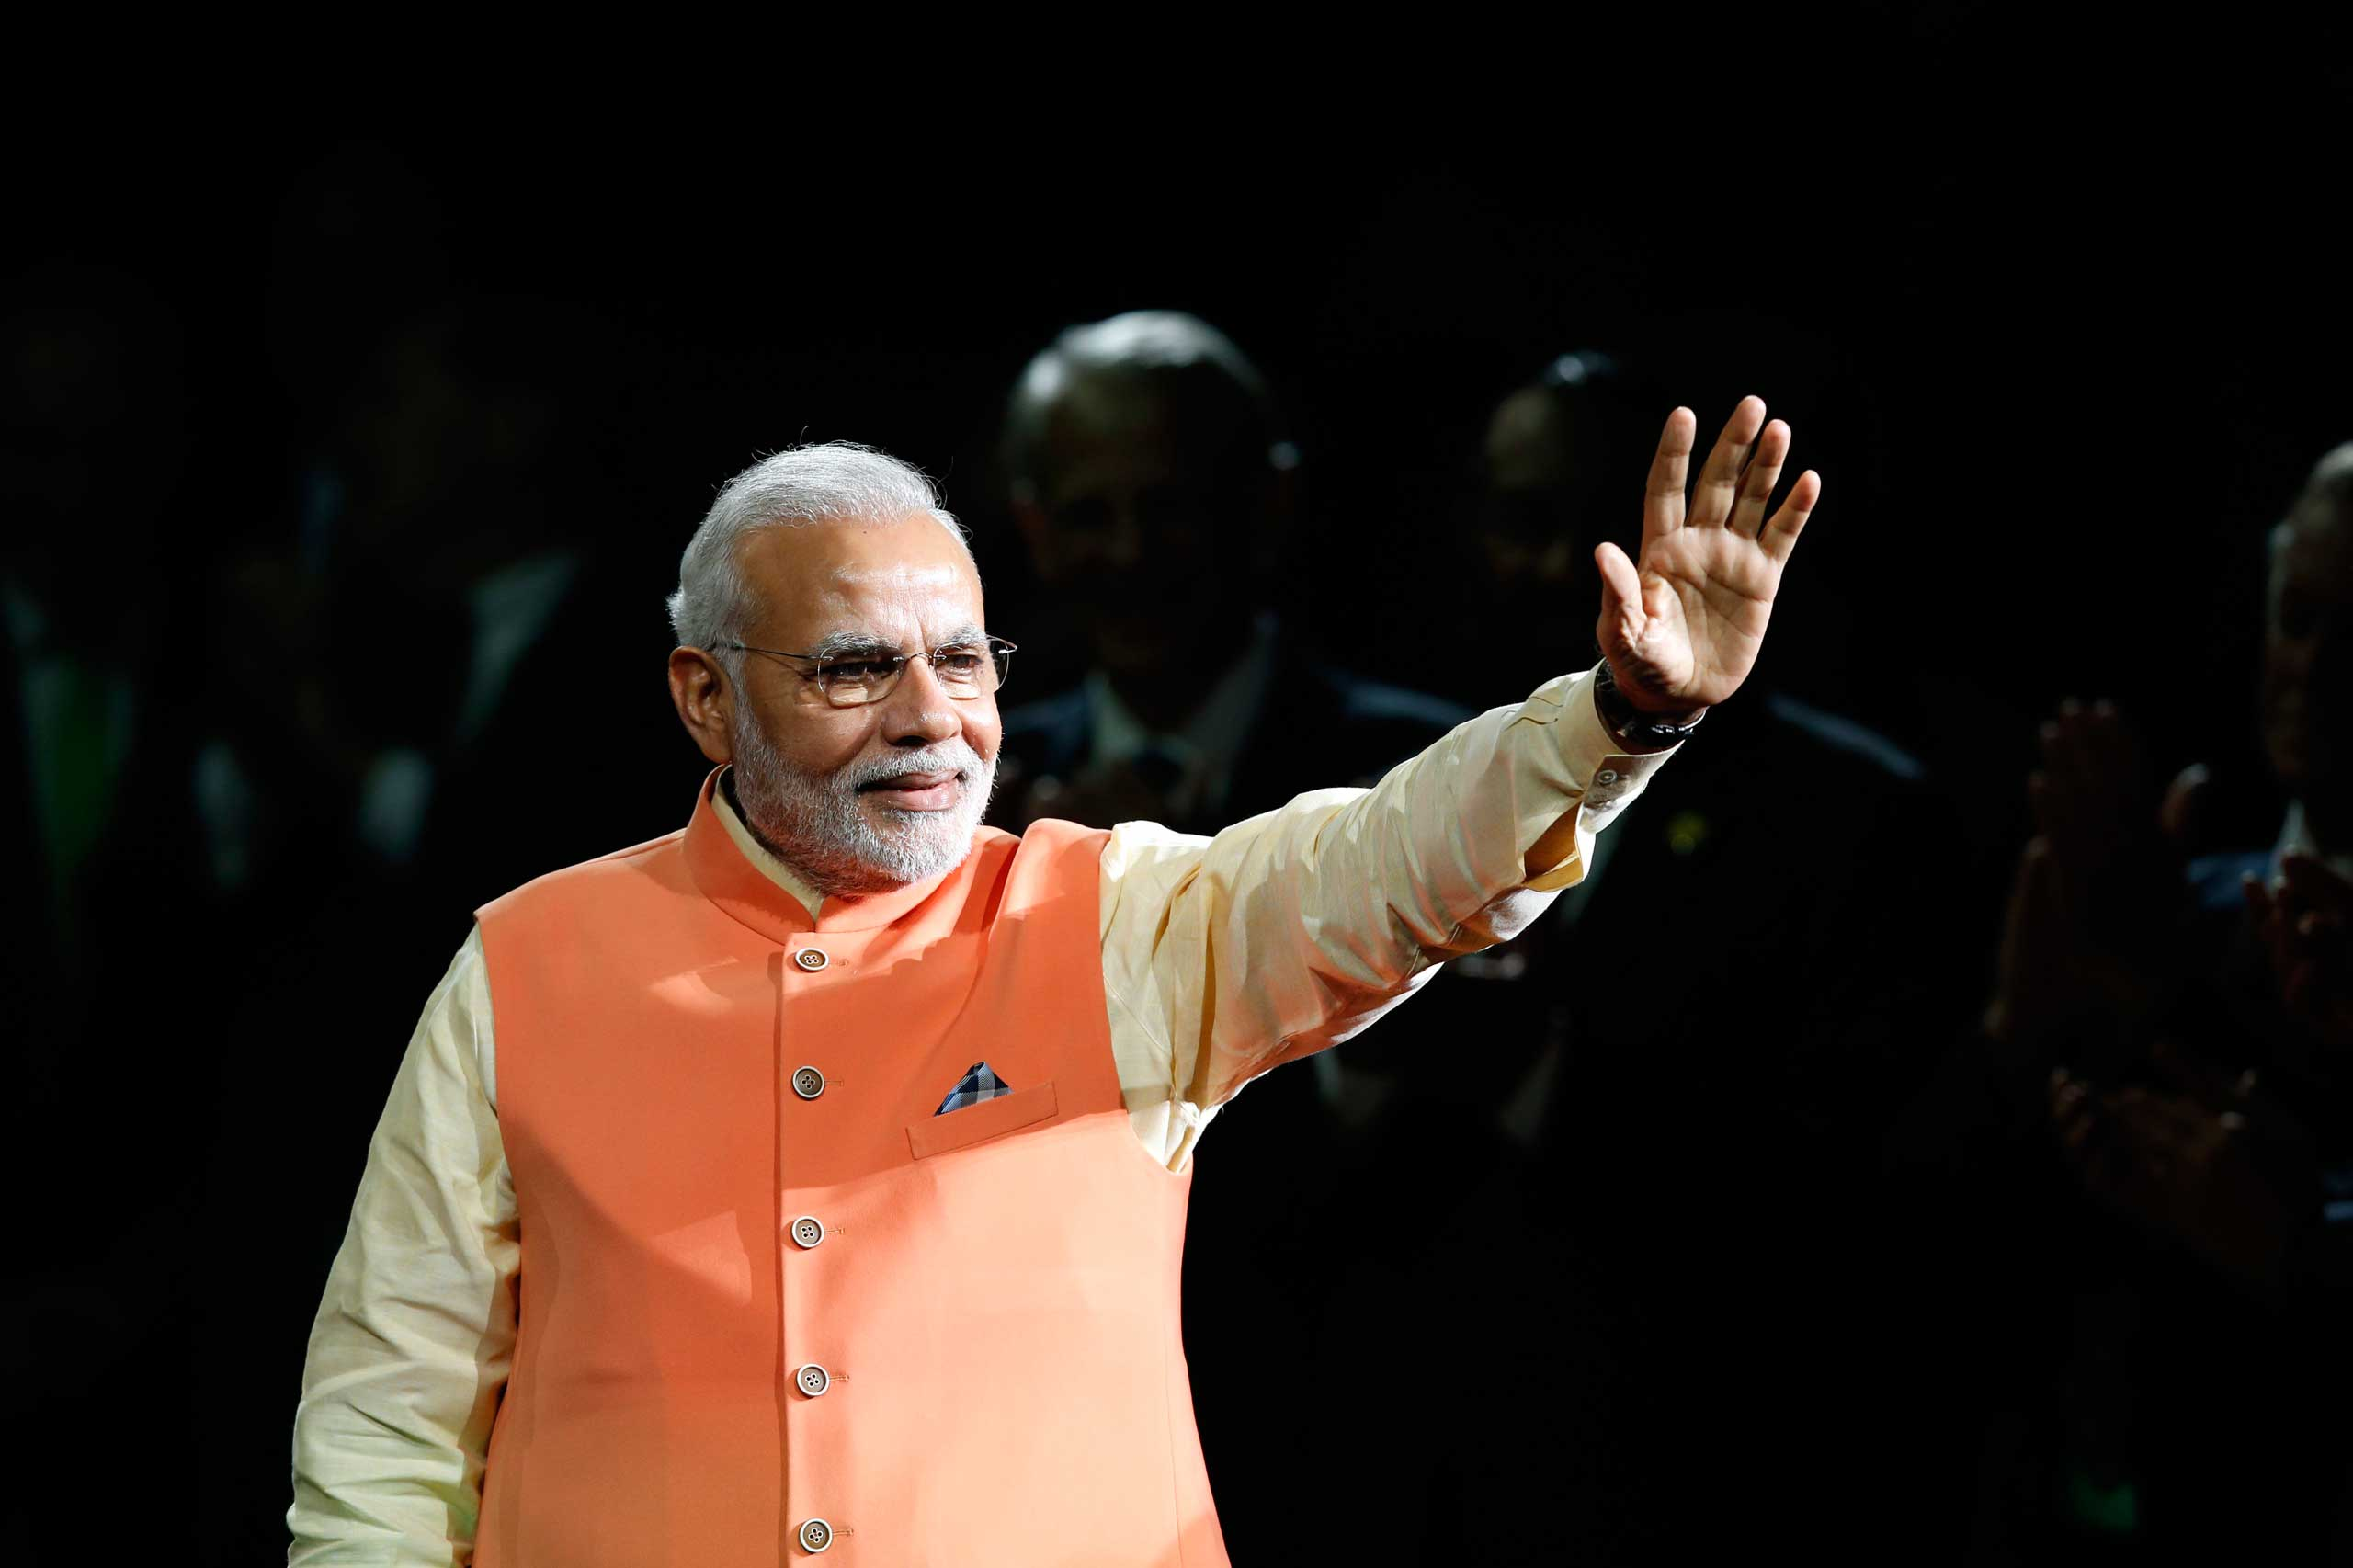 Prime Minister Narendra Modi of India waves to the crowd as he arrives to give a speech during a reception by the Indian community in honor of his visit to the United States at Madison Square Garden, Sept. 28, 2014, in New York.